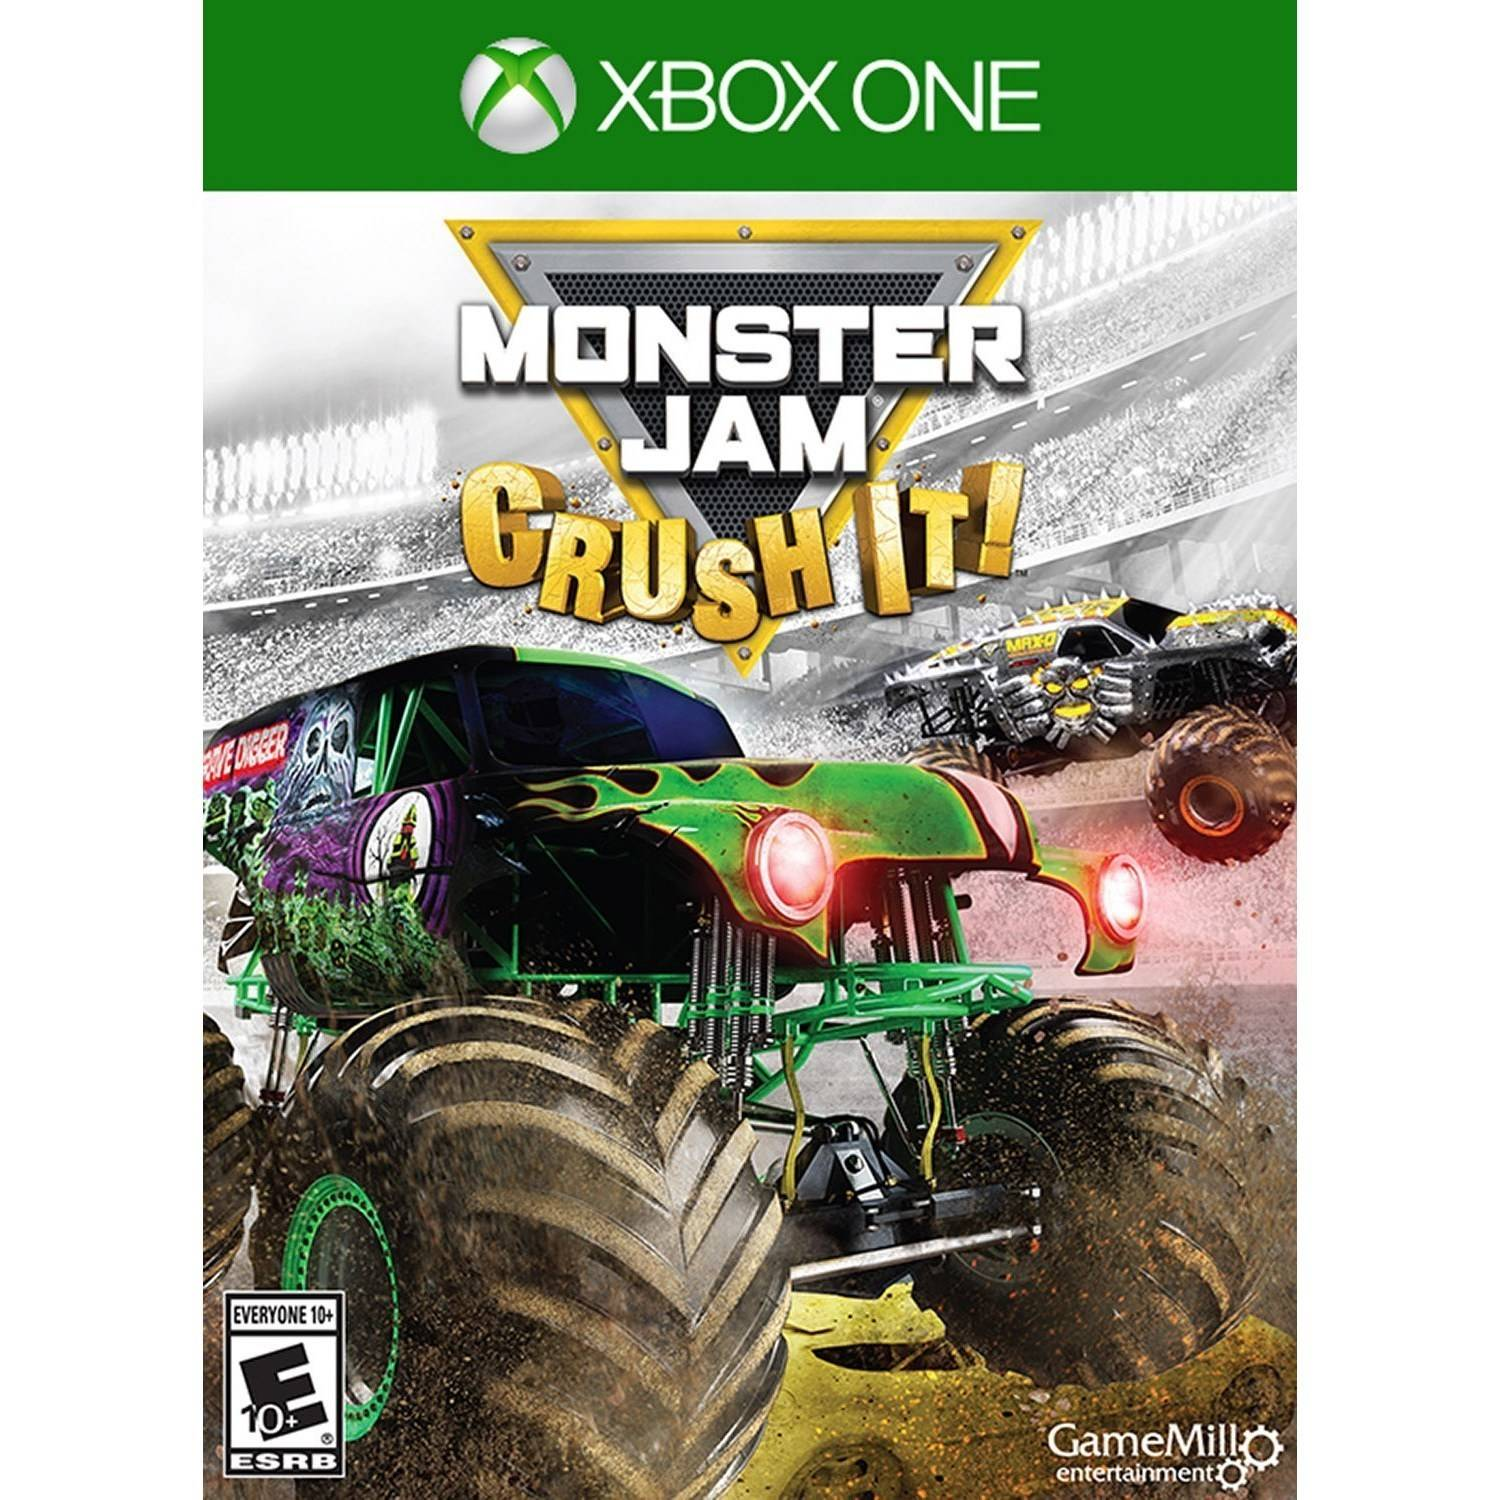 Monster Jam (Xbox One) by MADCOW